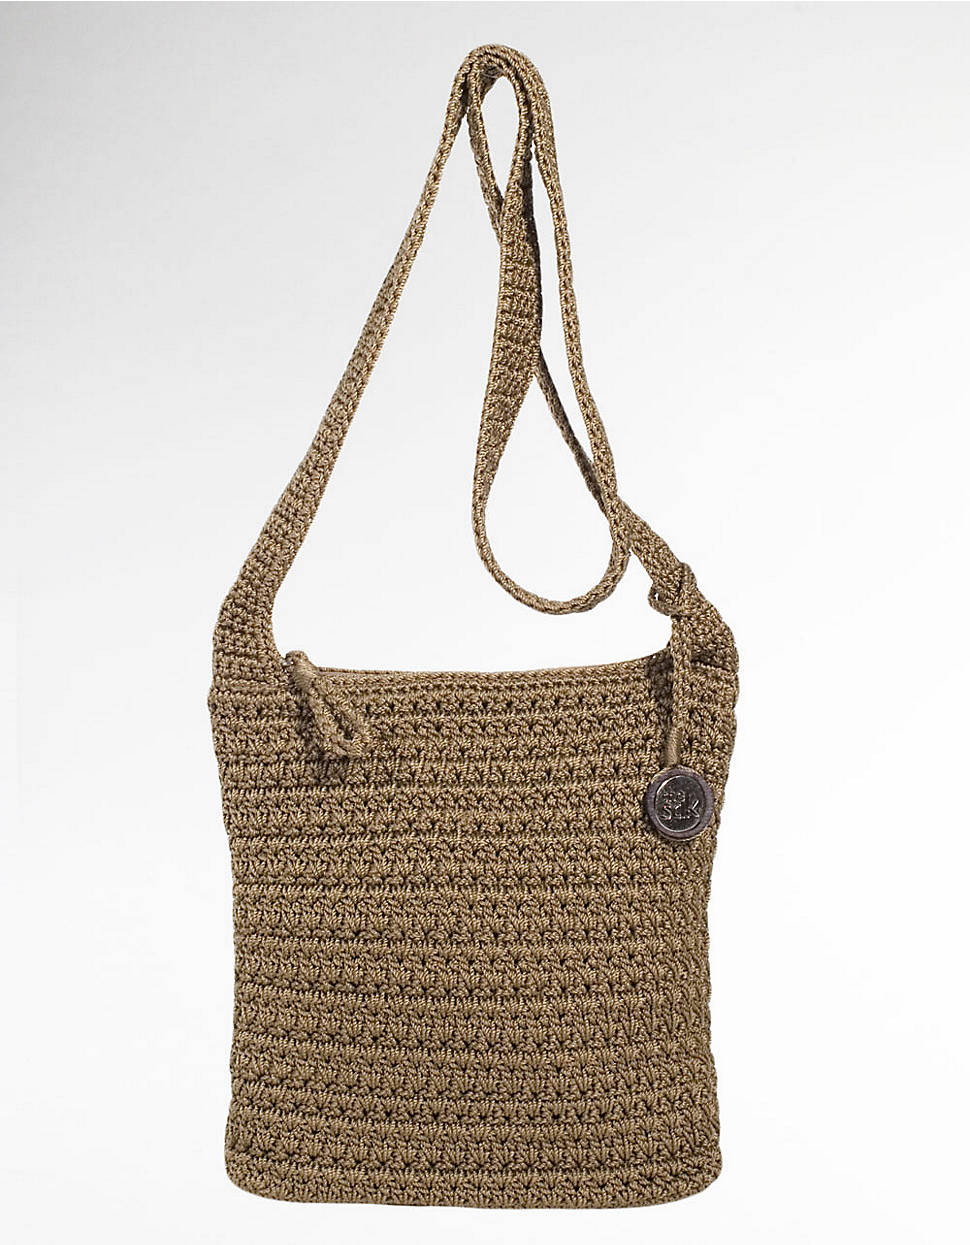 The Sak Crochet New Lyst the Sak Casual Classics Crochet Crossbody Bag In Brown Of The Sak Crochet Awesome the Sak Black Crochet Cross Body Shoulder Bag Purse Handbag